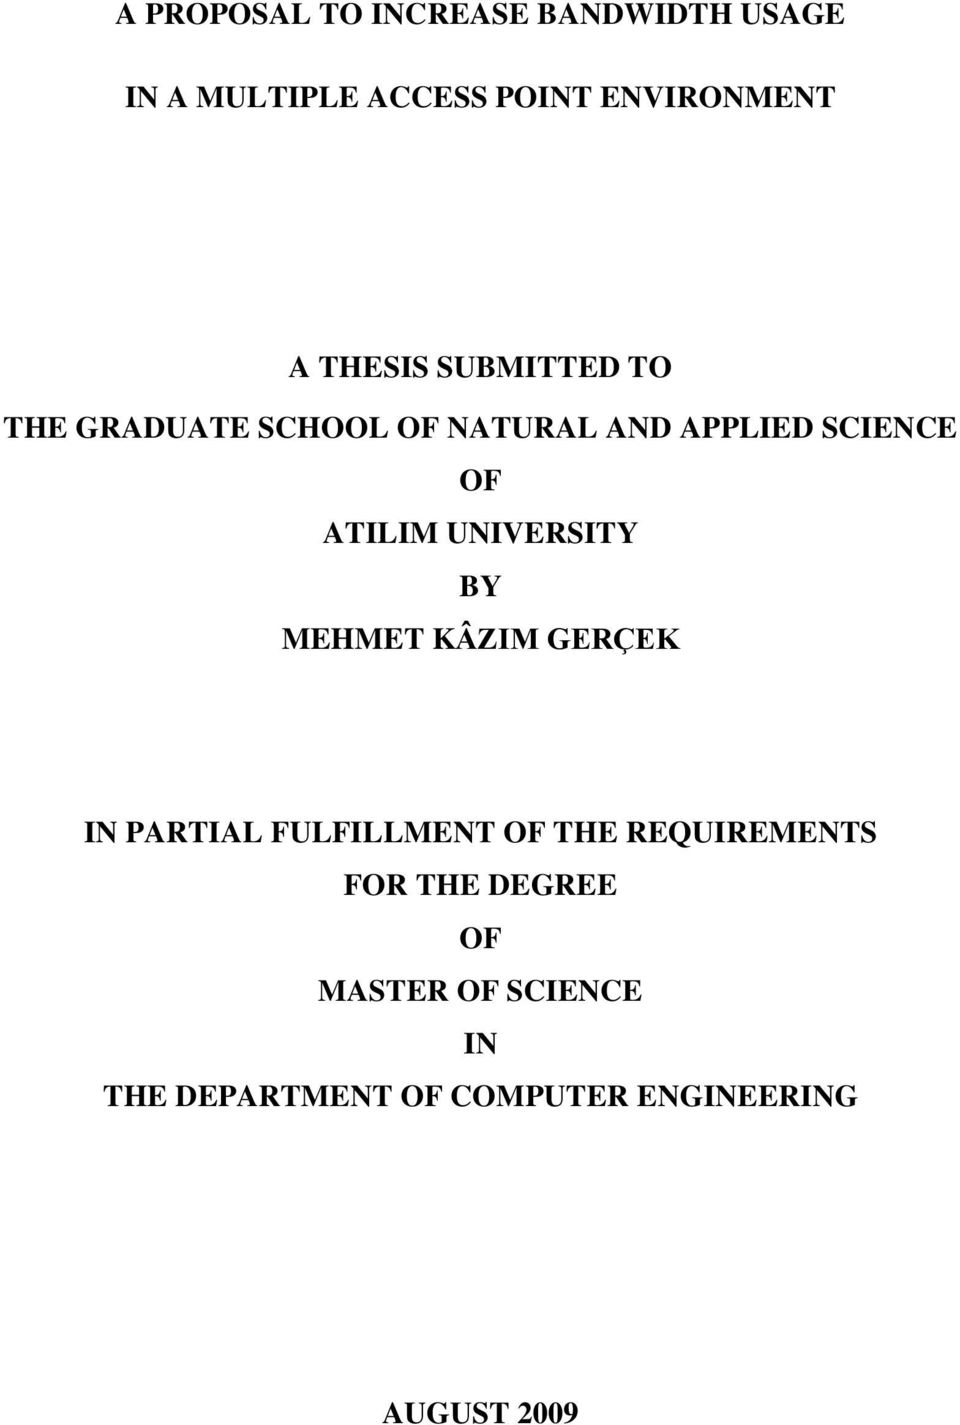 UNIVERSITY BY MEHMET KÂZIM GERÇEK IN PARTIAL FULFILLMENT OF THE REQUIREMENTS FOR